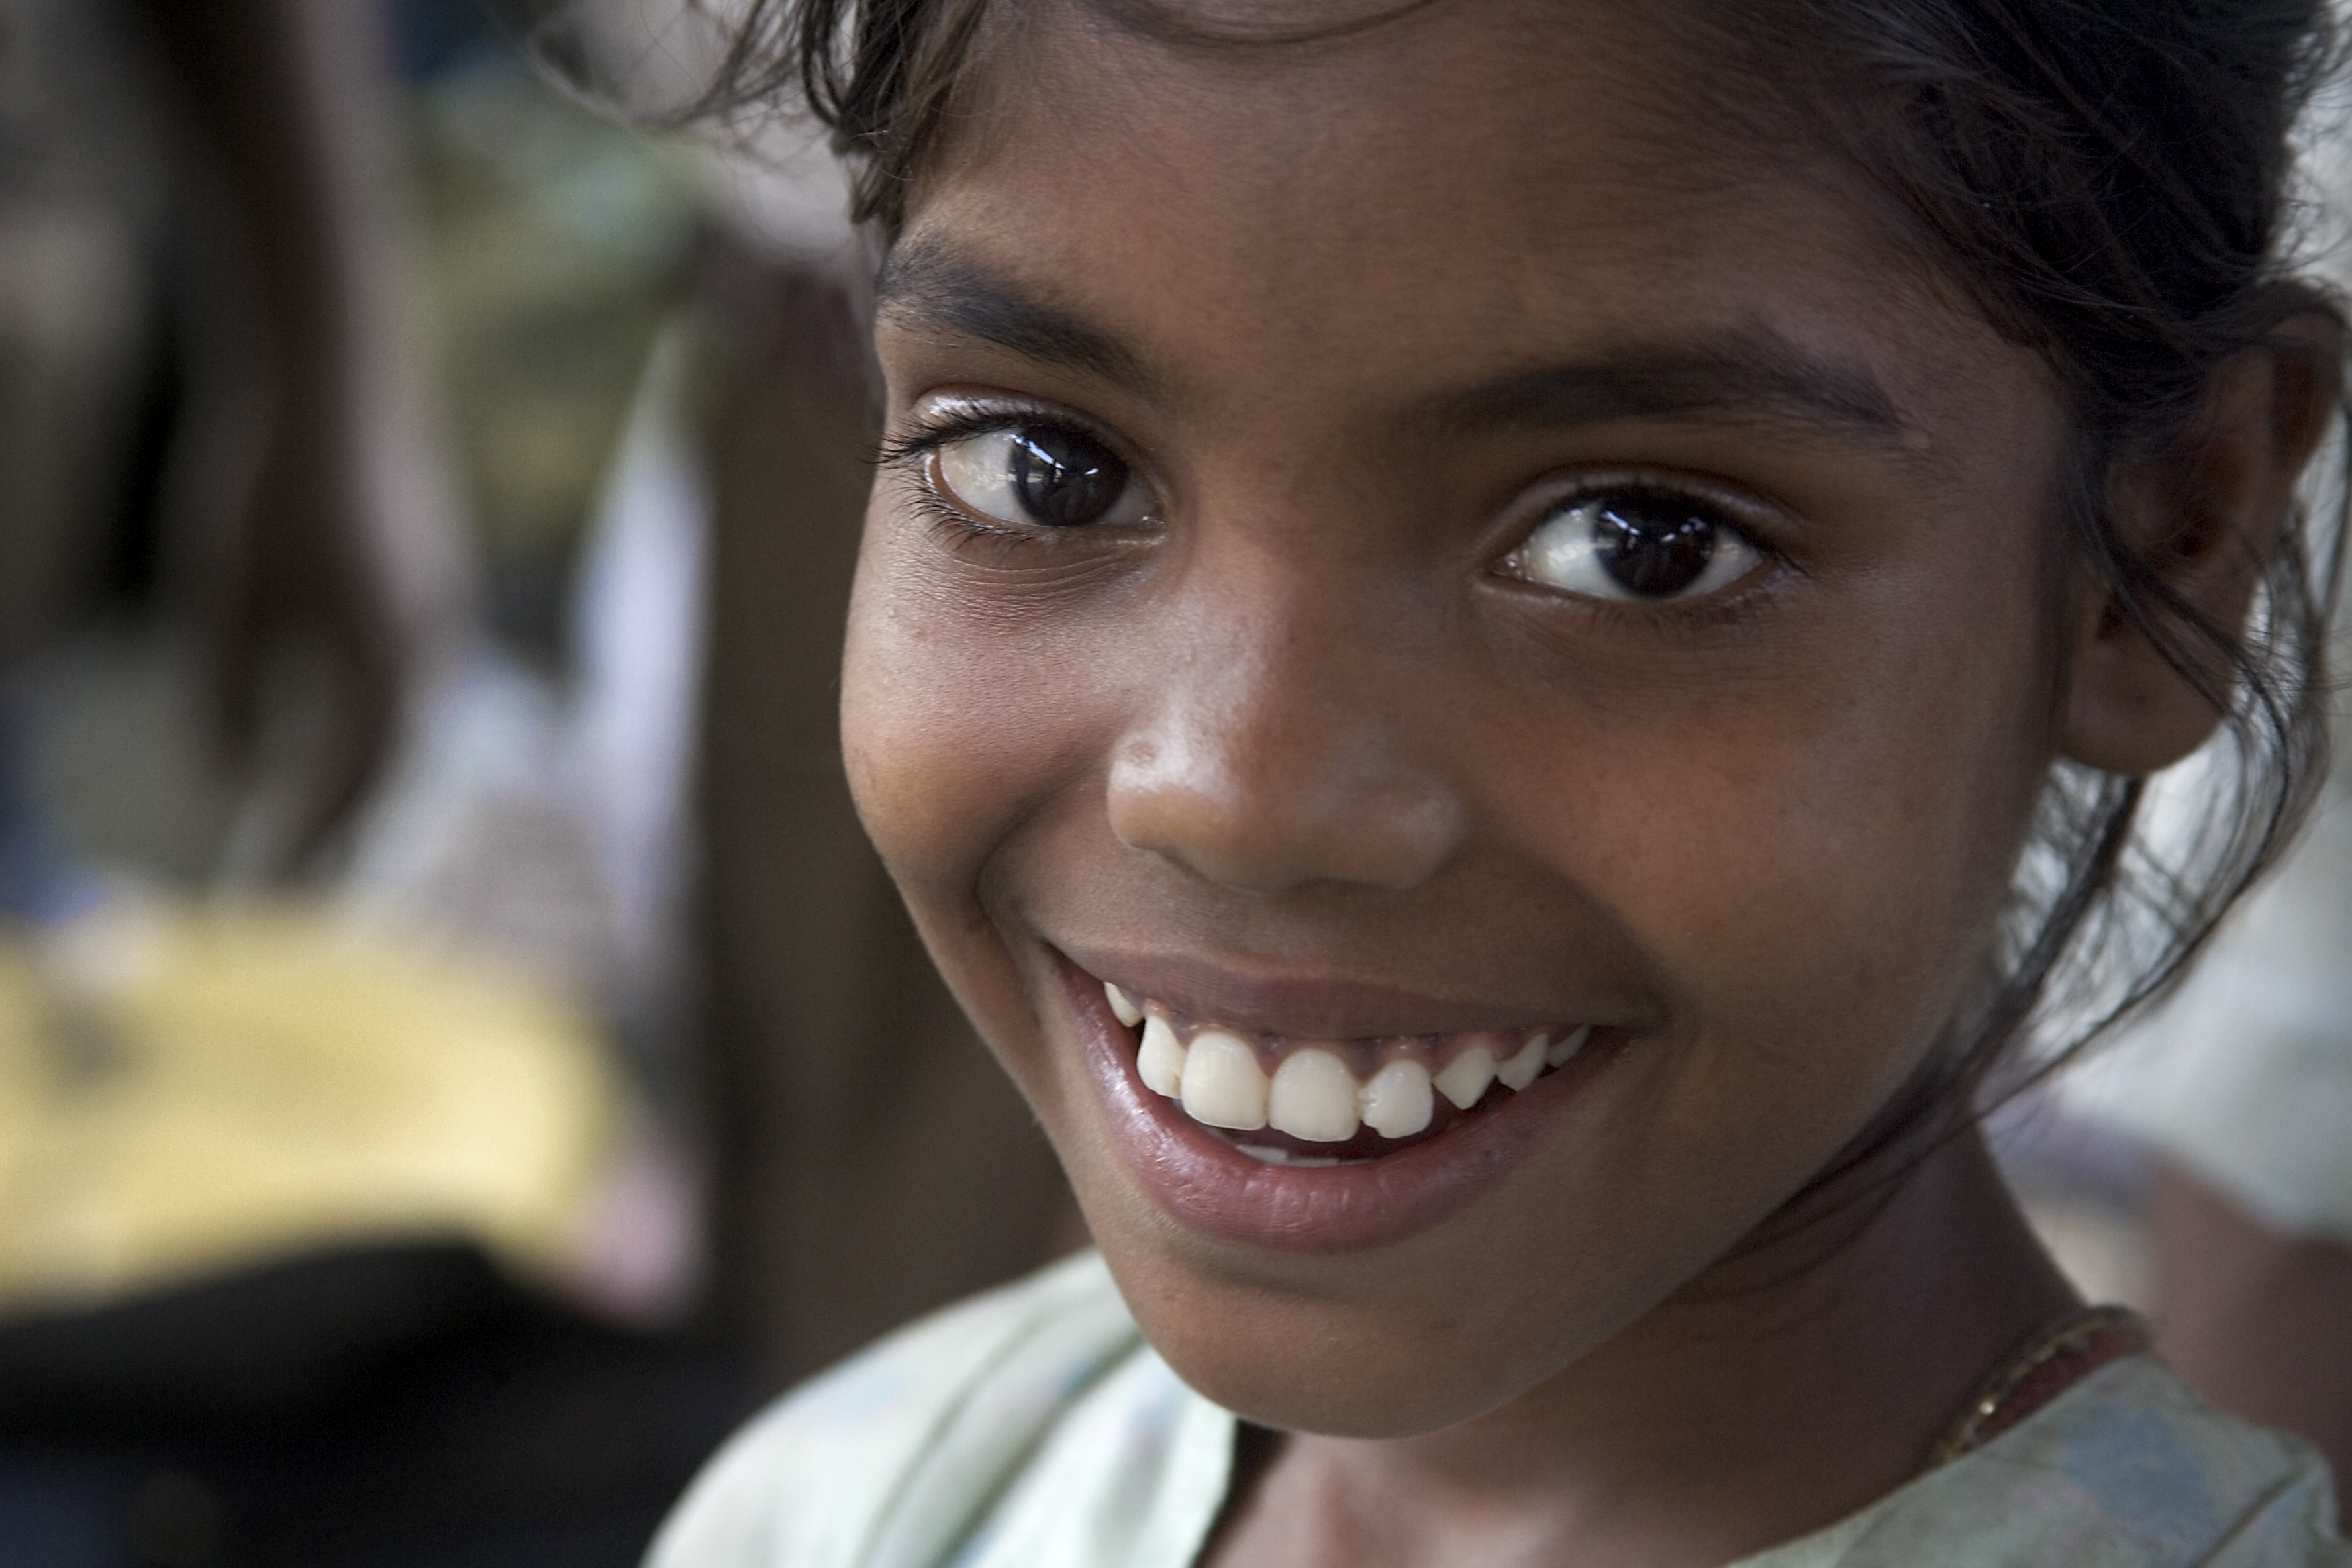 http://obviousmag.org/andre_camargo/2015/07/01/India_-_Delhi_smiling_girls_-_4698.jpg